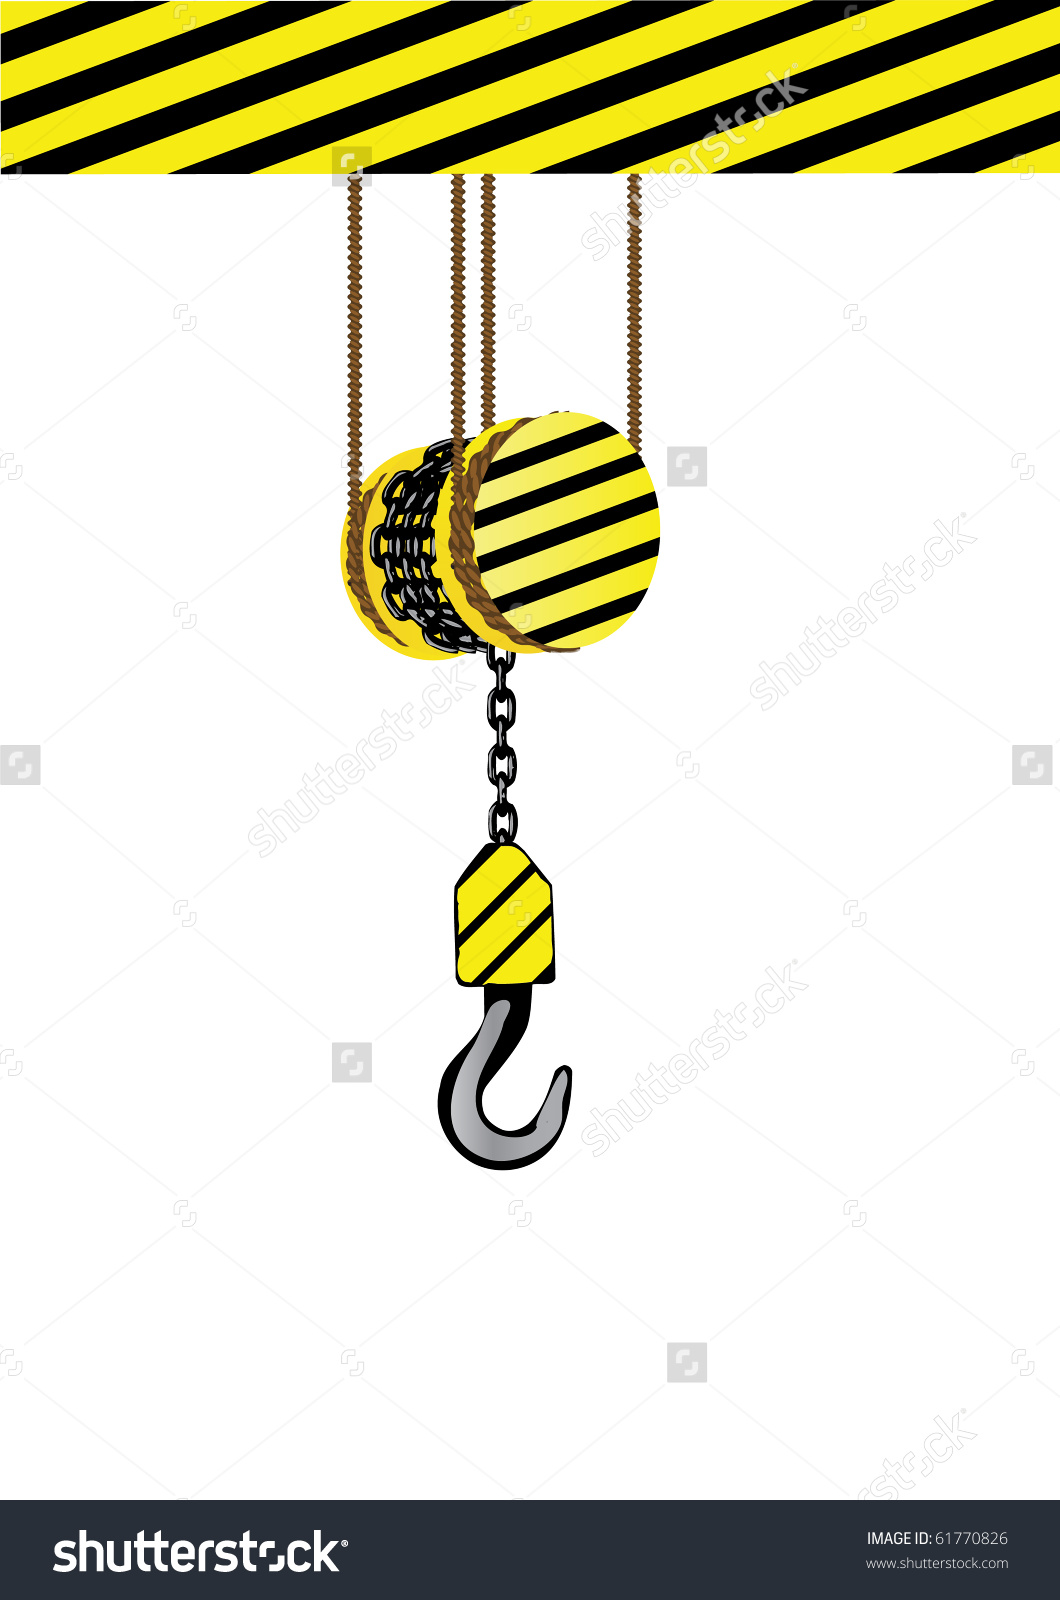 Vector Illustration Iron Hook On Chain Stock Vector 61770826.